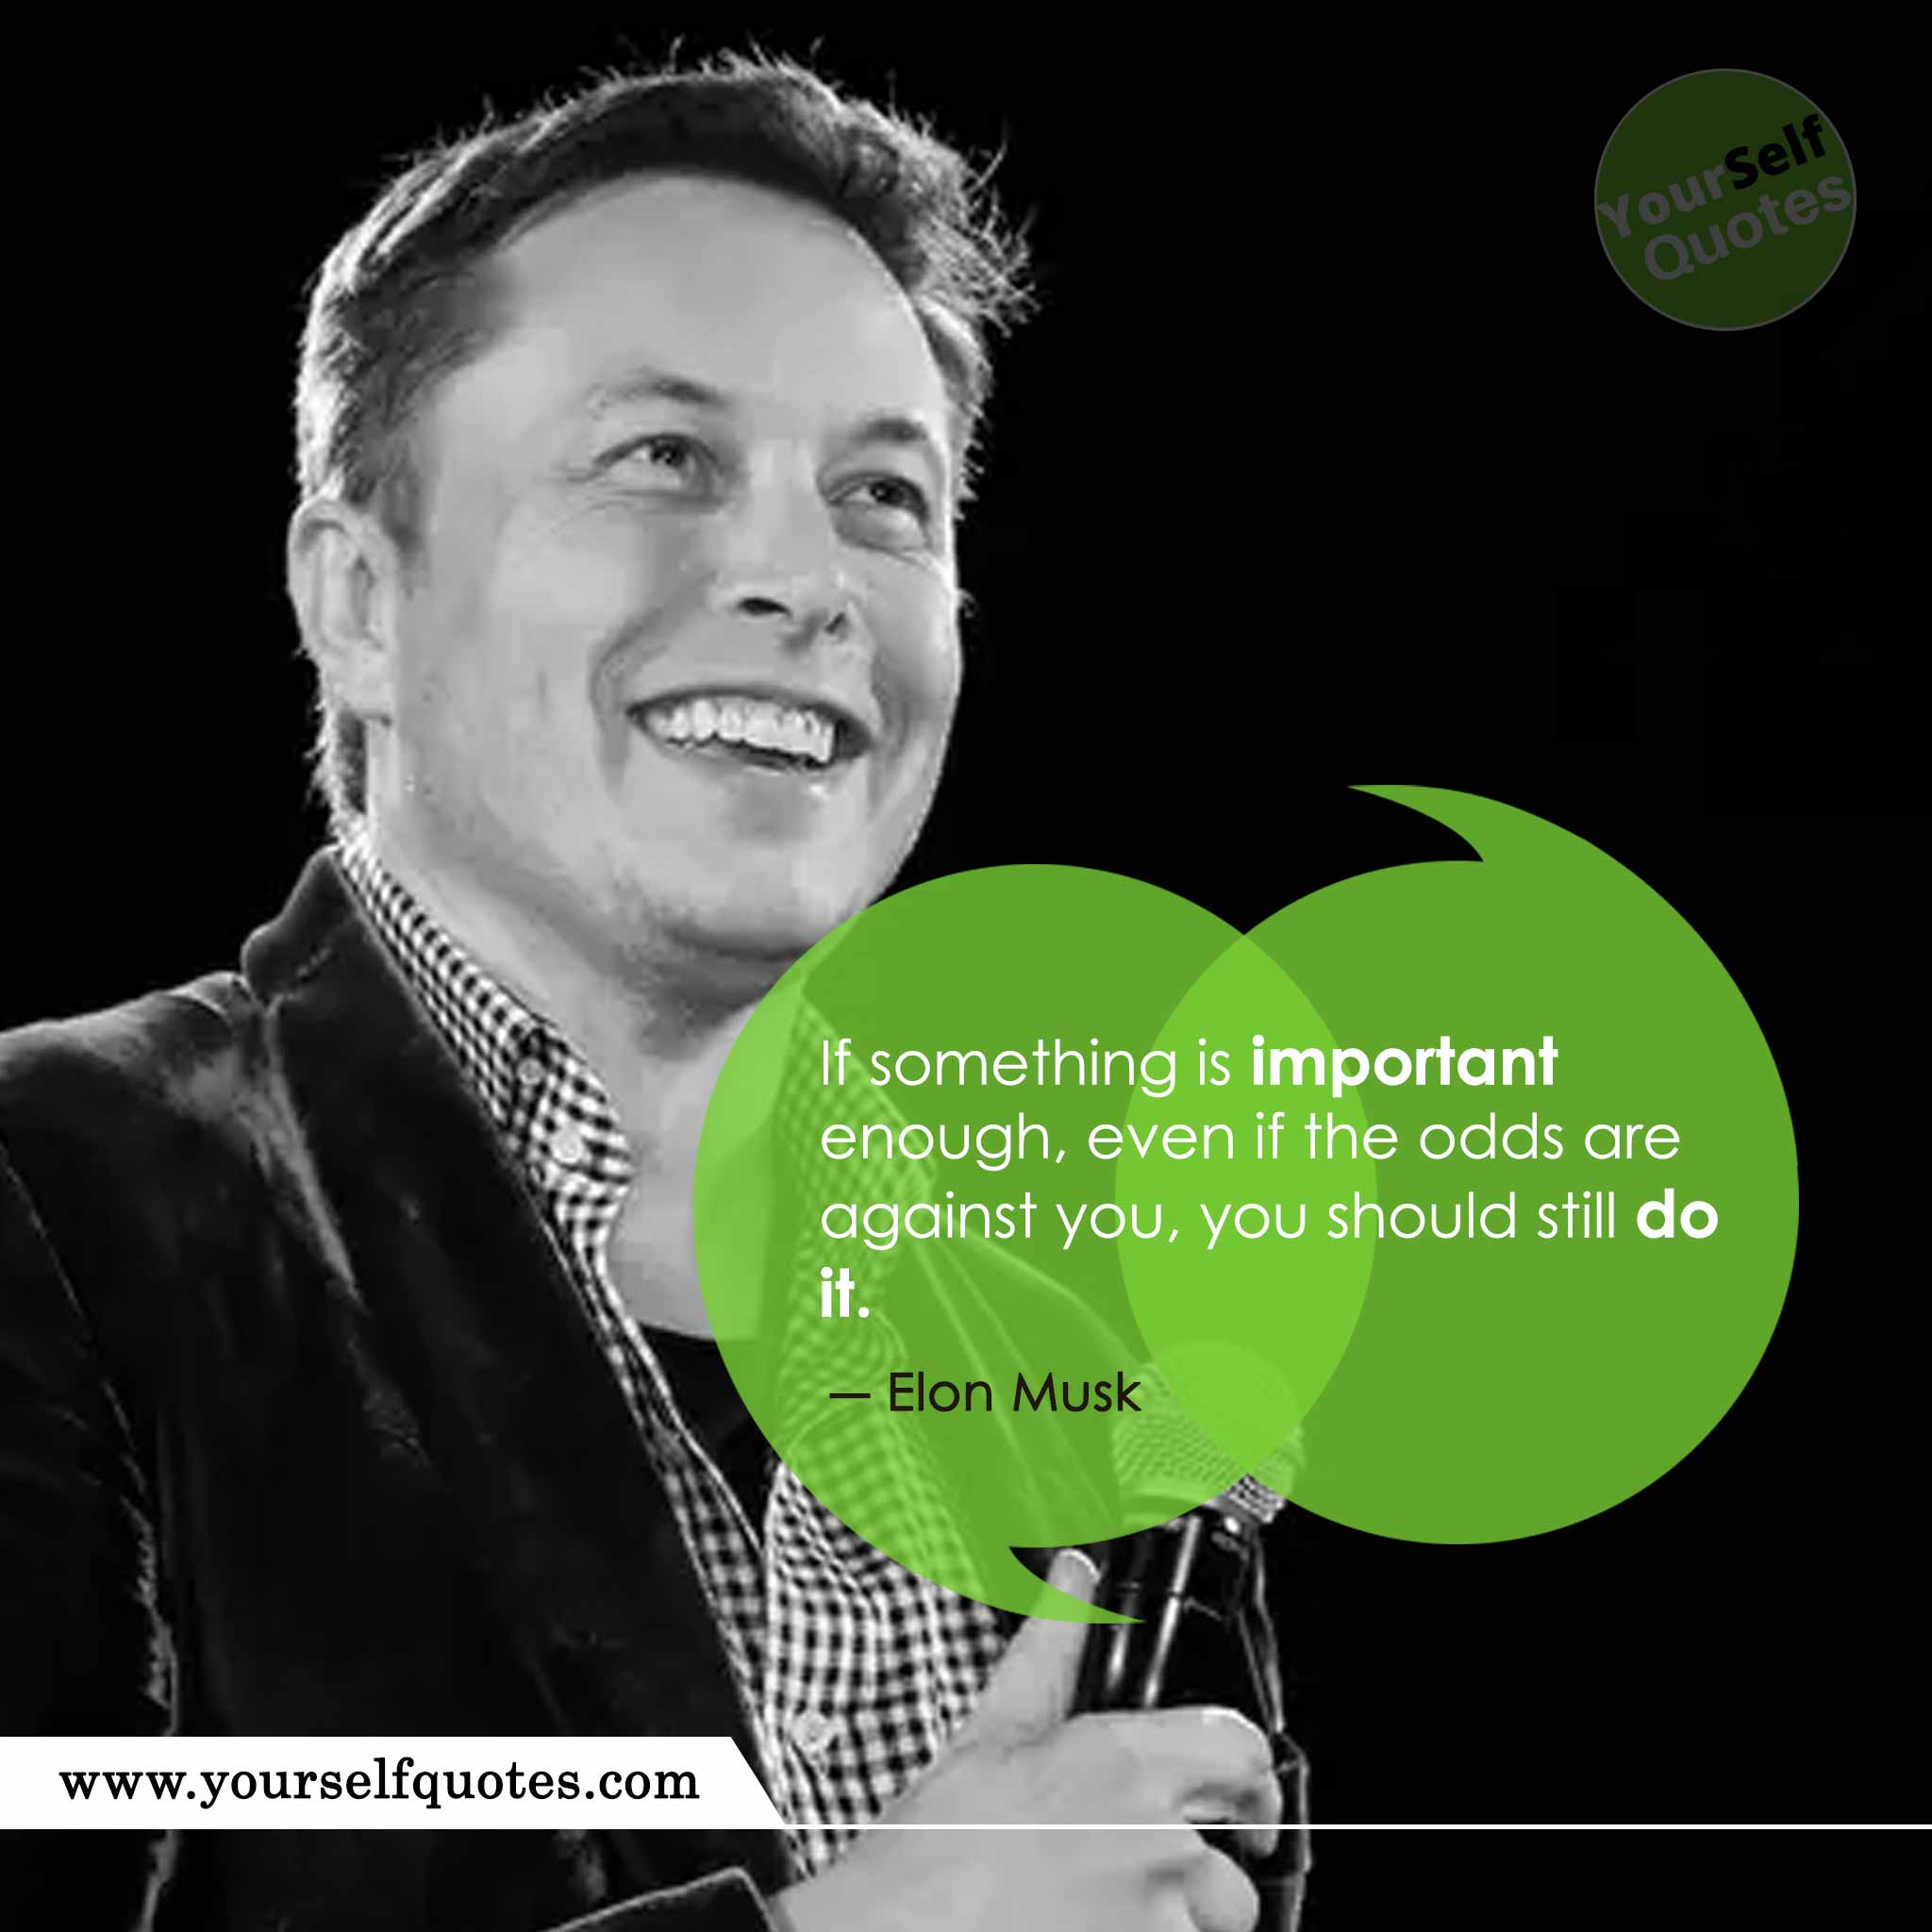 Elon Musk Quotes On Success in Life